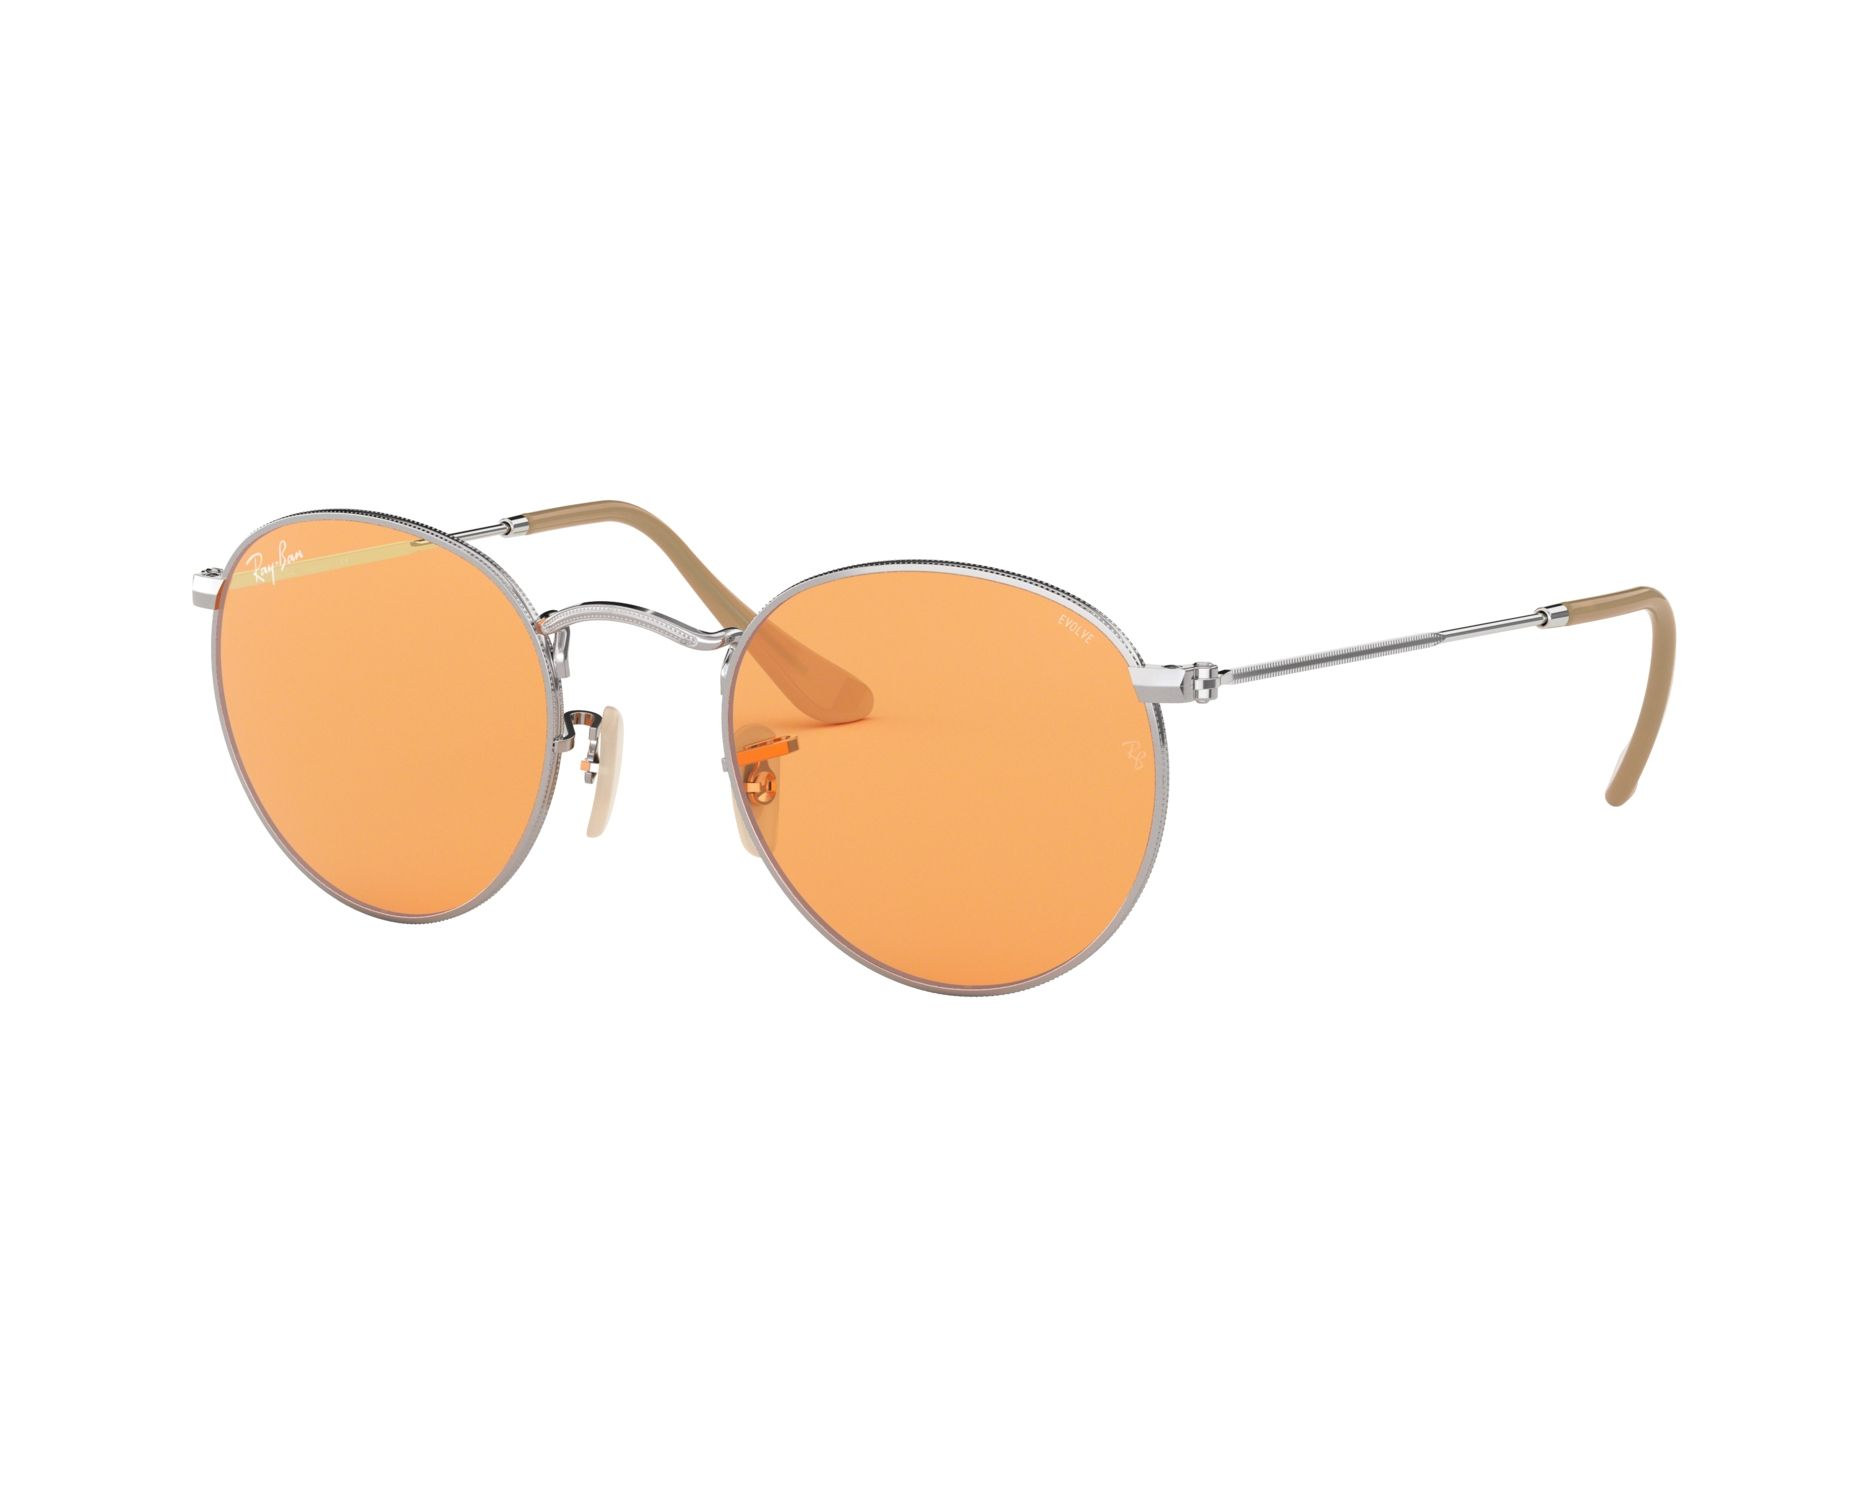 ce69a7c6863 Sunglasses Ray-Ban RB-3447 9065V9 50-21 Silver